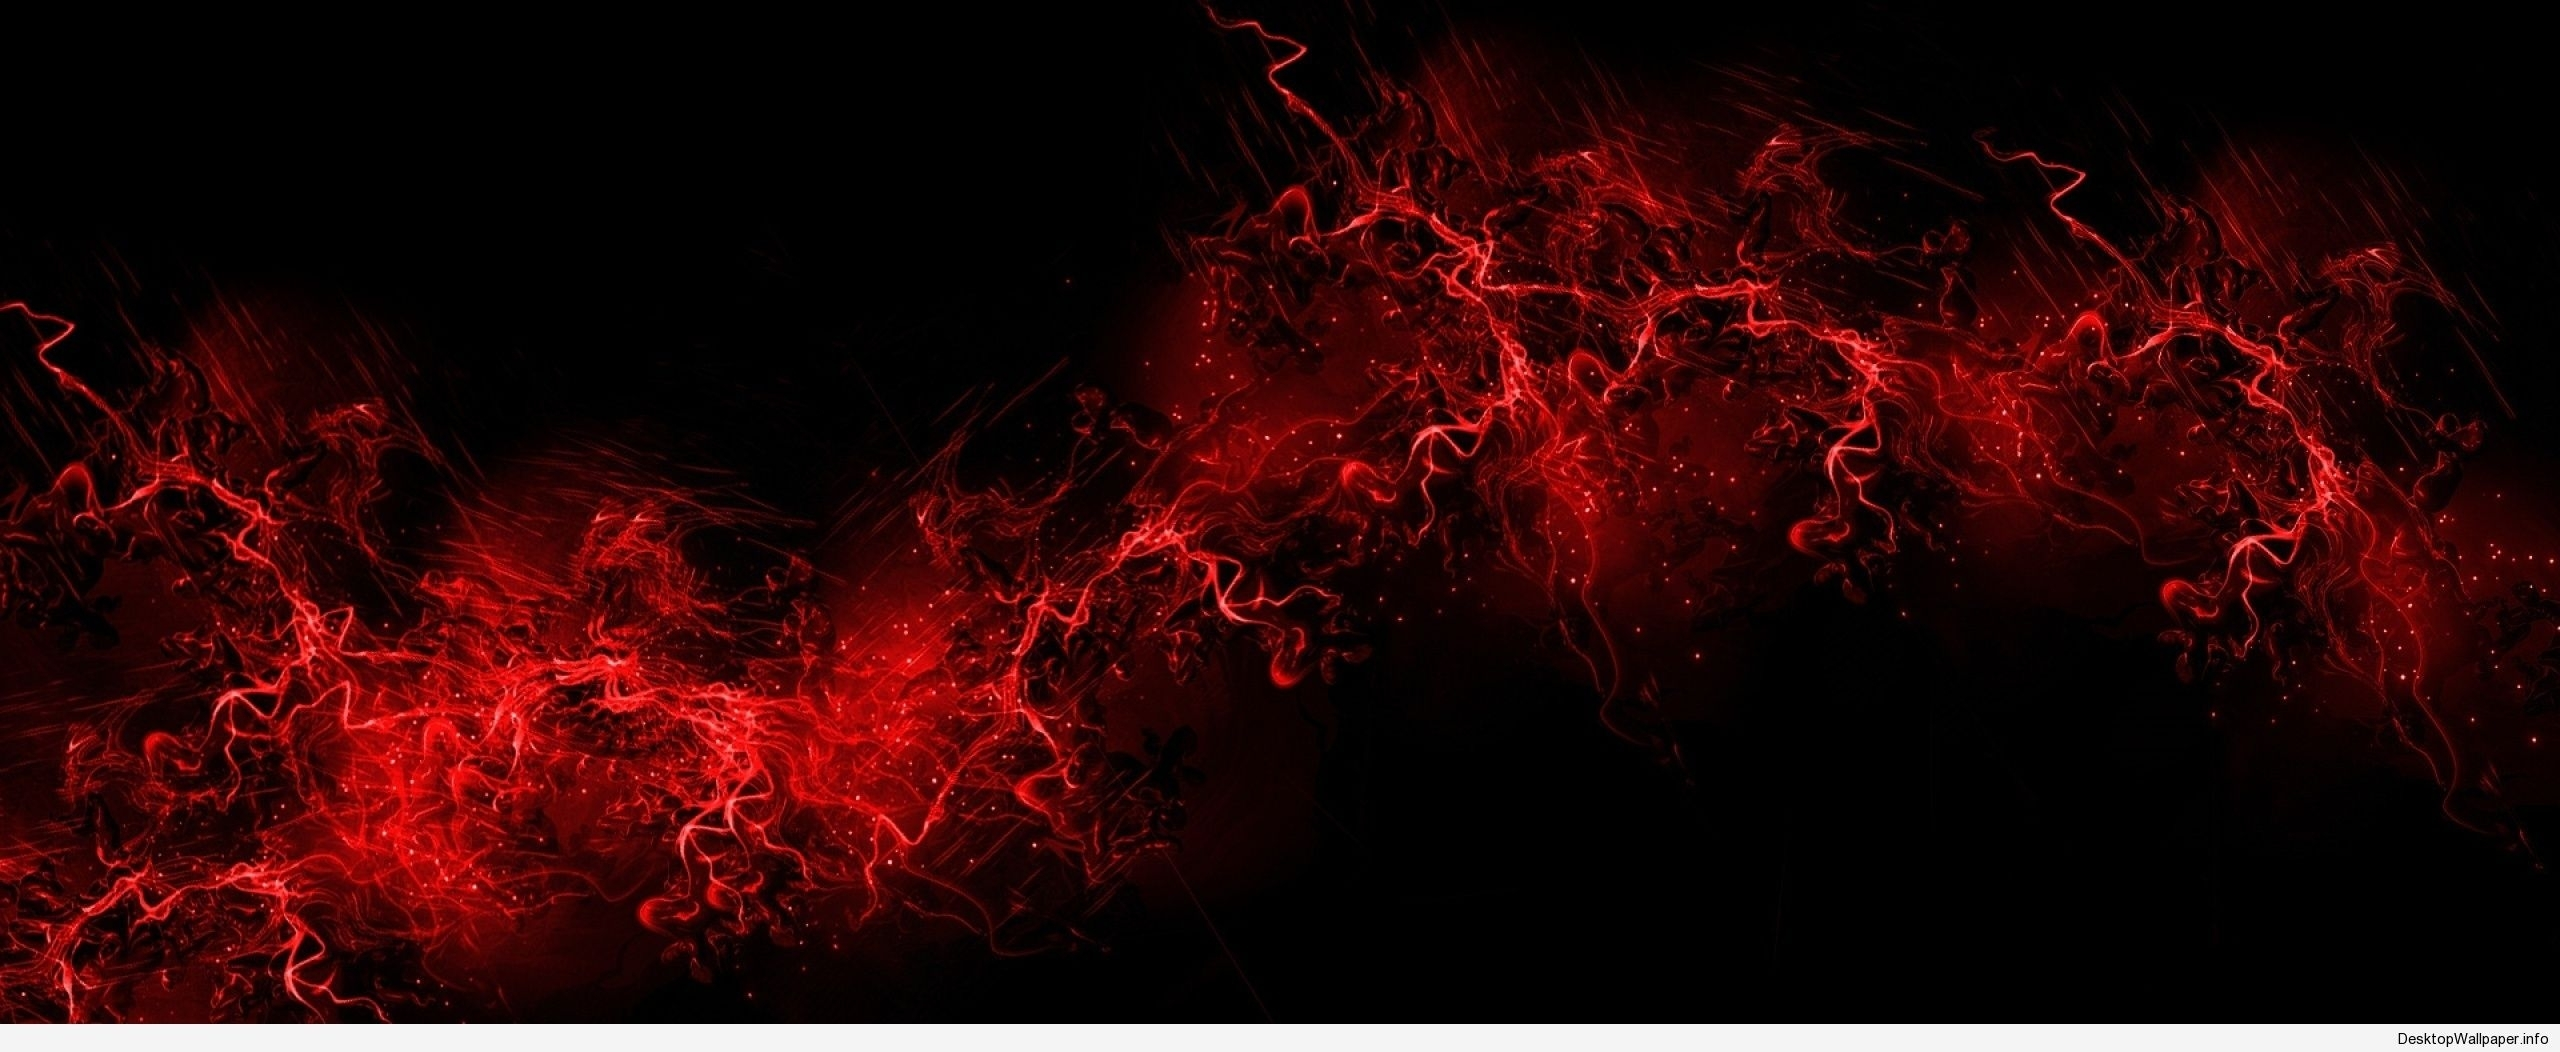 10 Top Dual Monitor Wallpaper Red And Black FULL HD 1920×1080 For PC Background